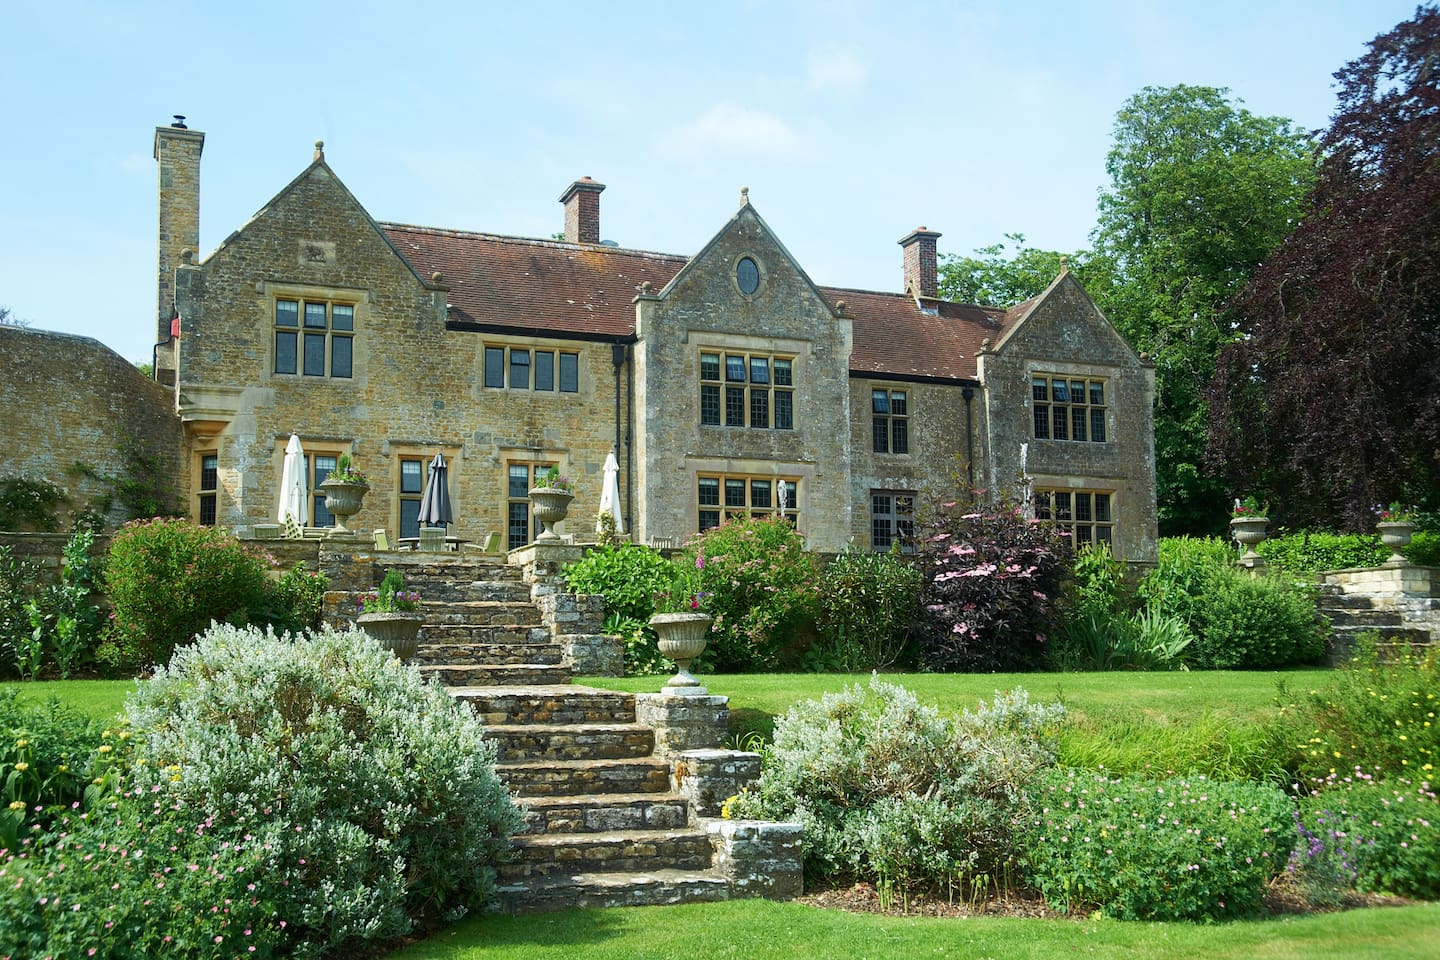 A beautiful stone manor dating from the 17th century.